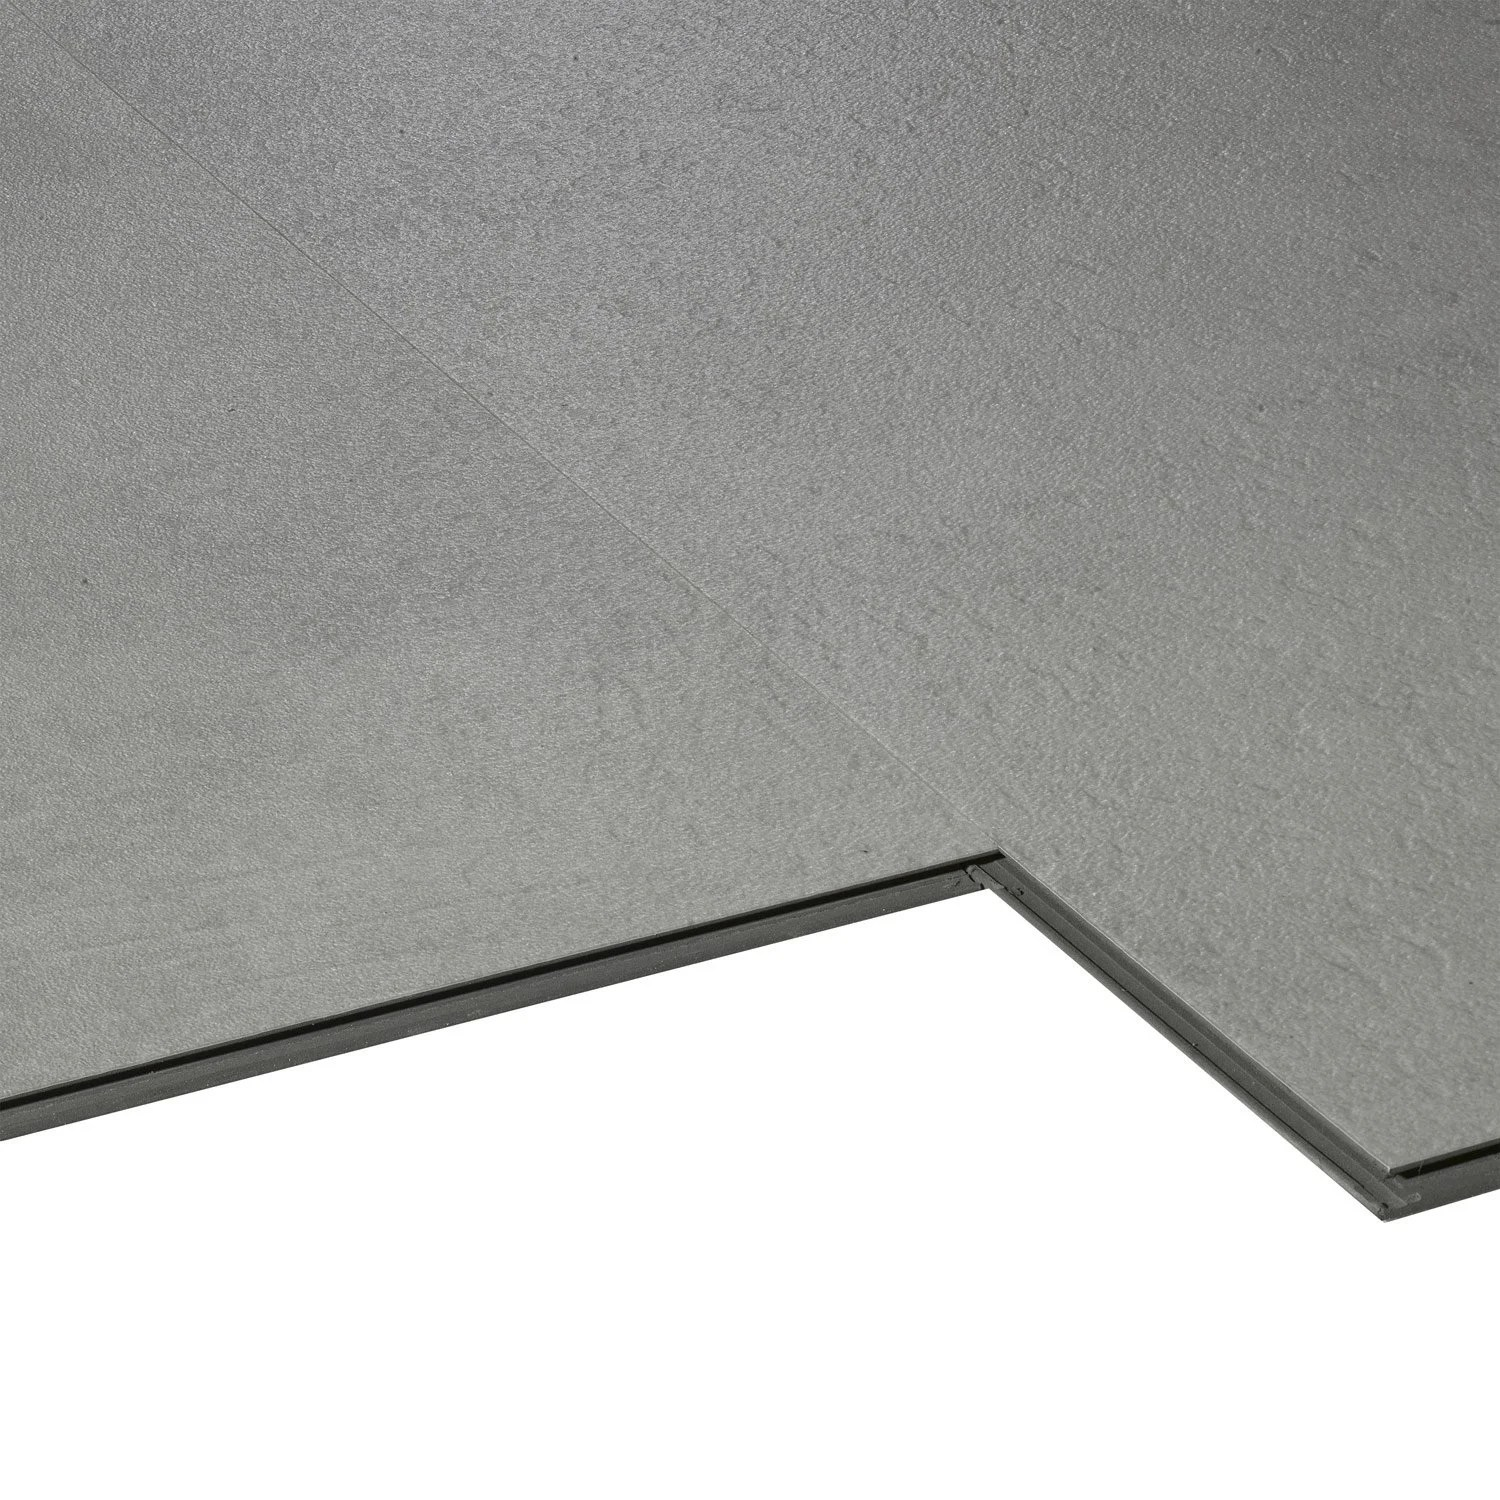 Dalle Exterieur Pvc Dalle Pvc Clipsable Gris Soft Grey Aero City Aero Leroy